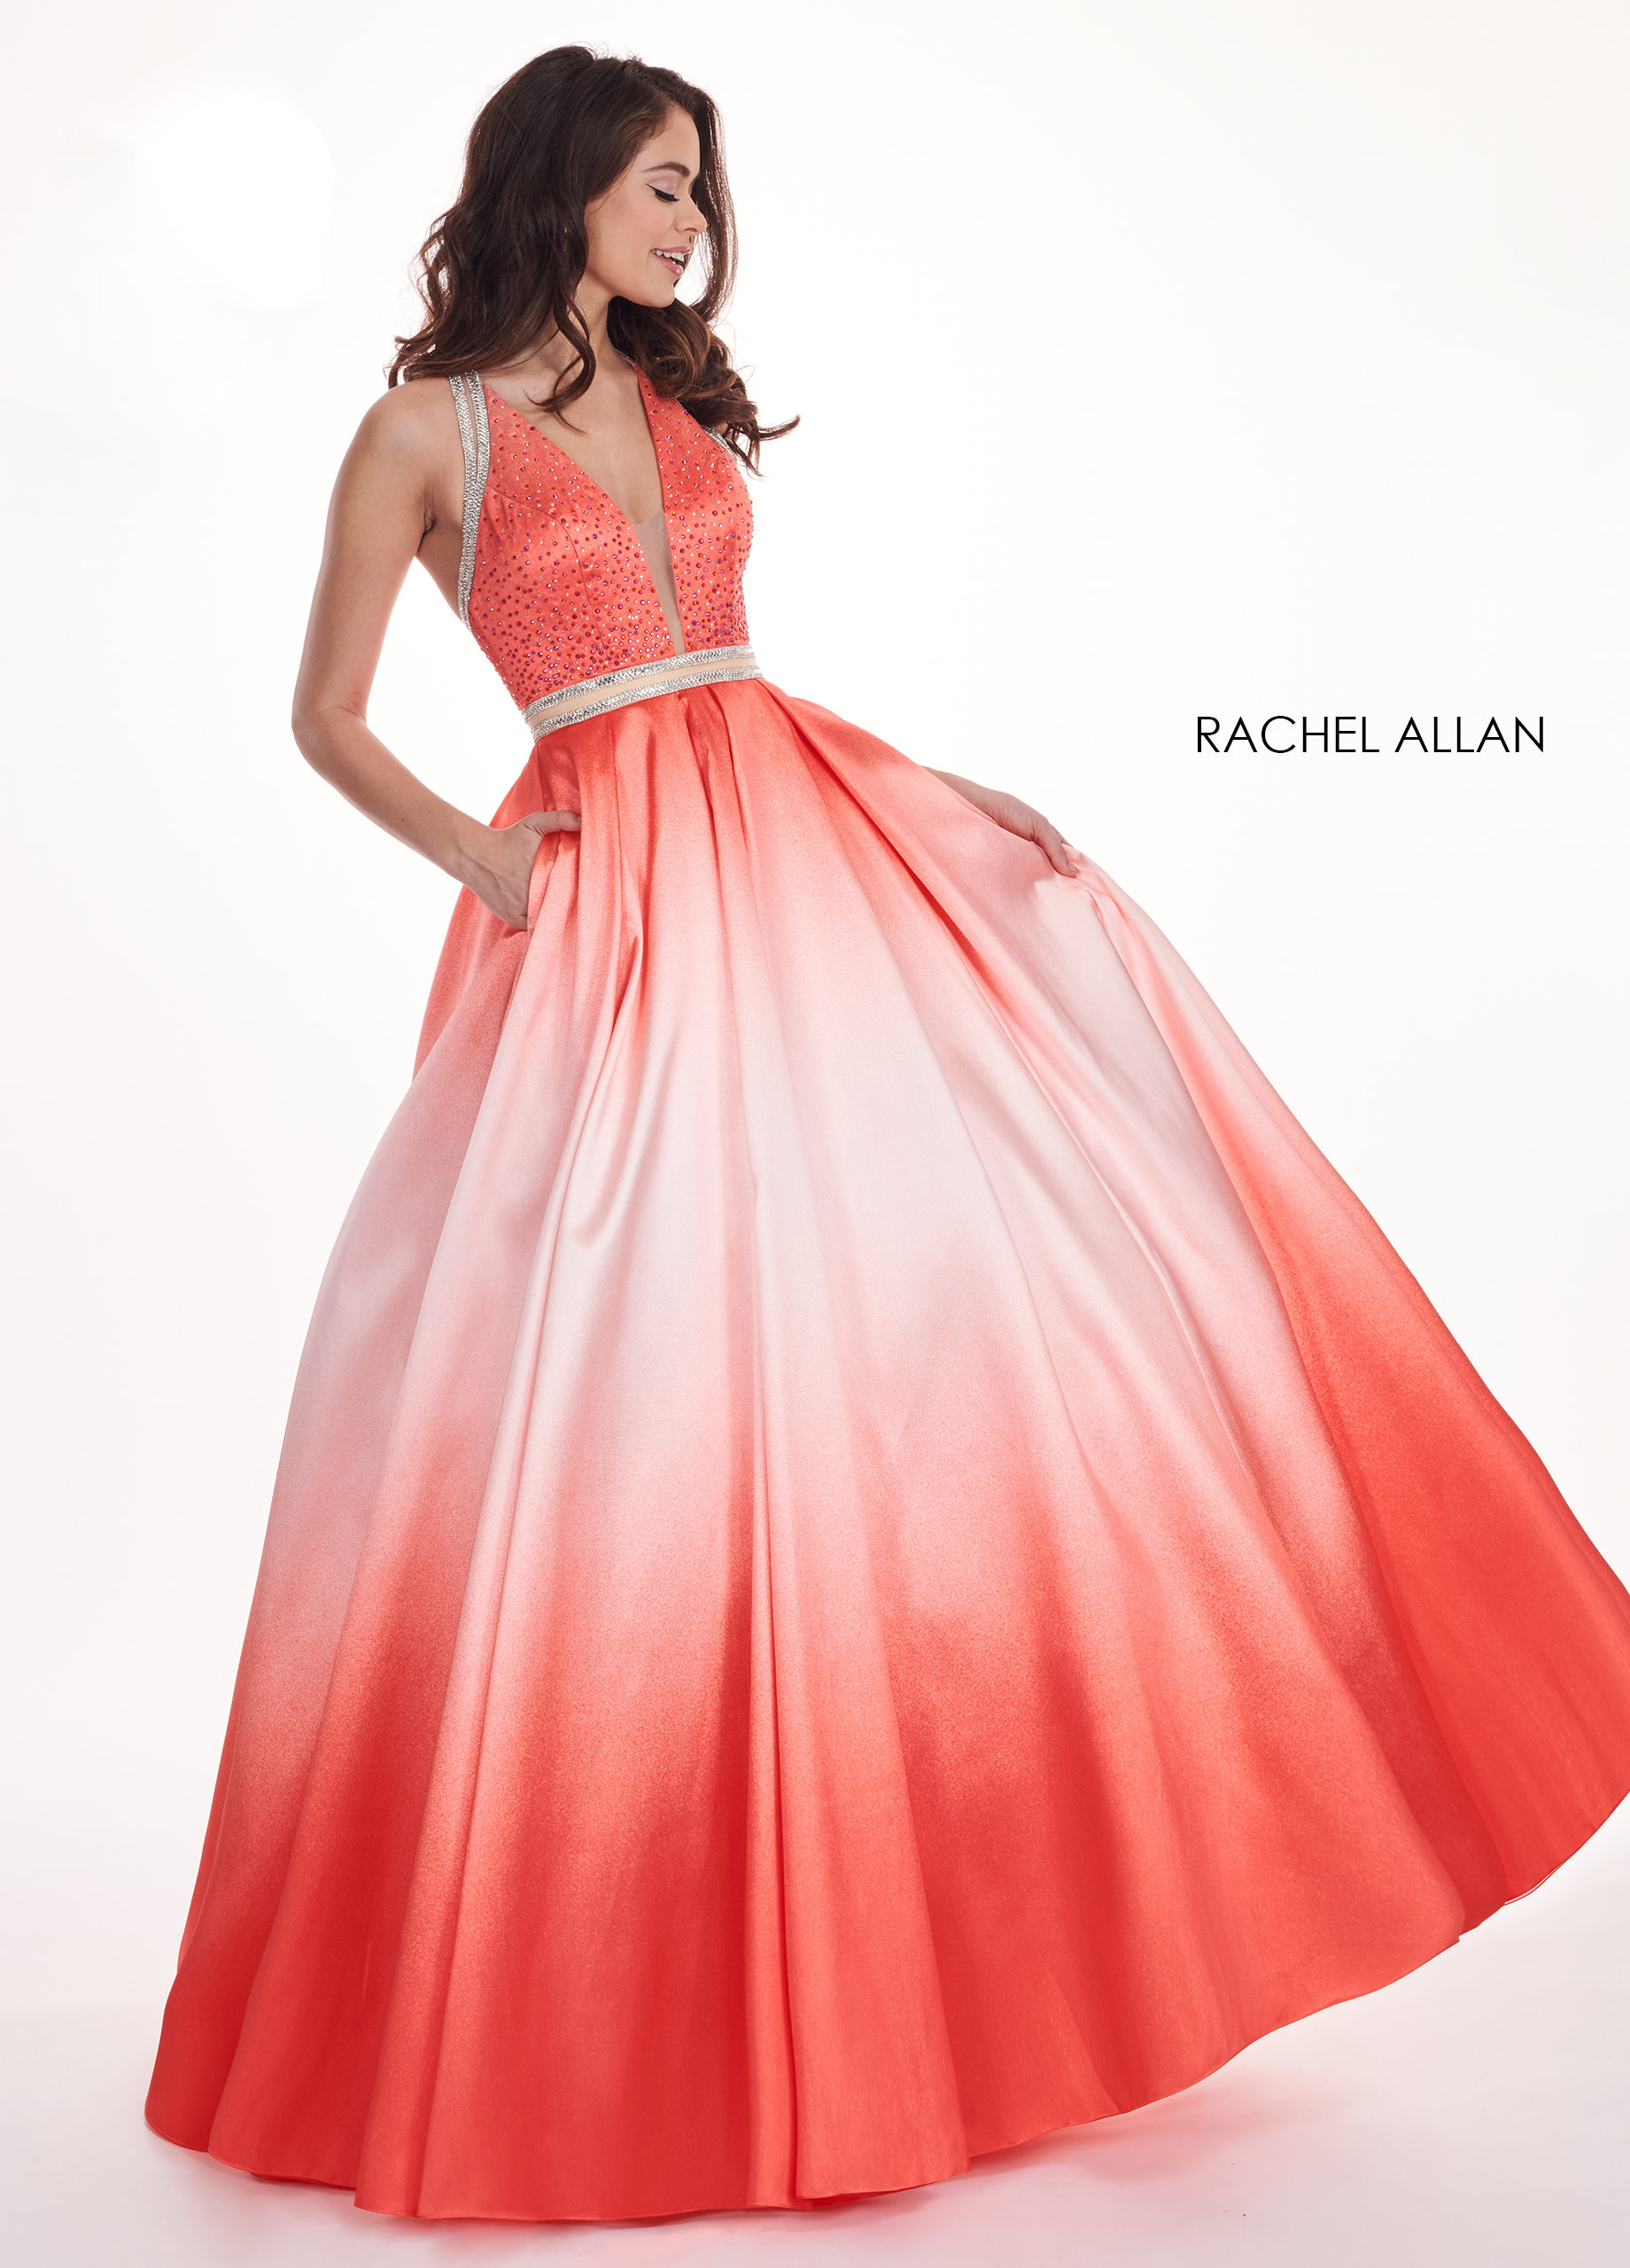 V-Neck Ball Gowns Prom Dresses in Coral Color